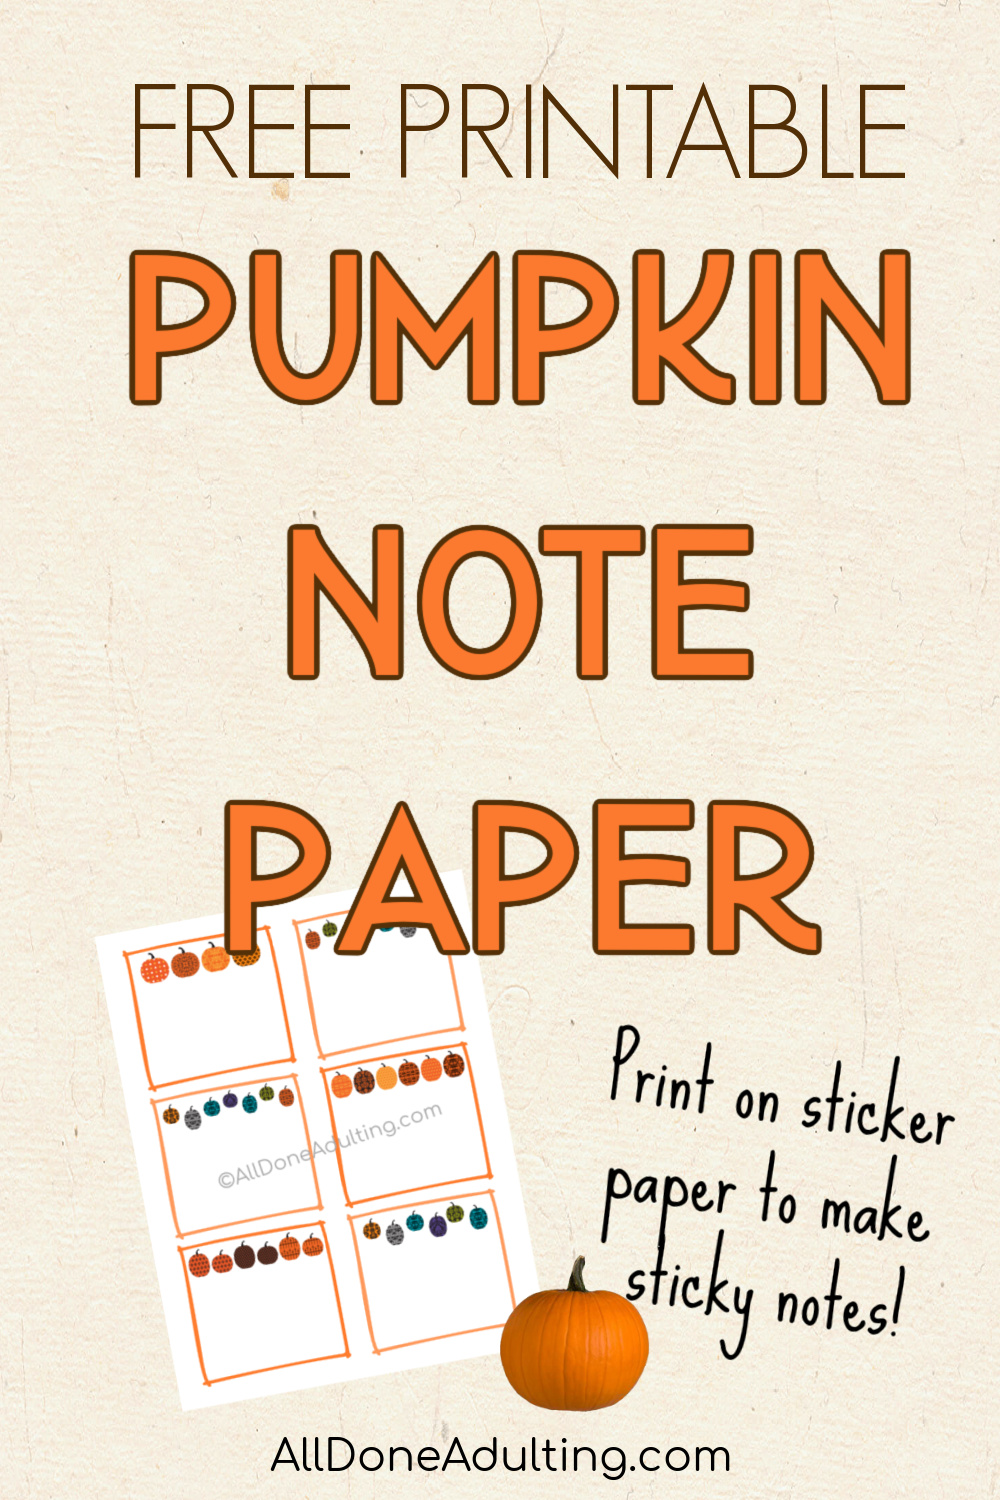 Pumpkin Stationery Sticky Notes For Journals Planners Free Printable All Done Adulting